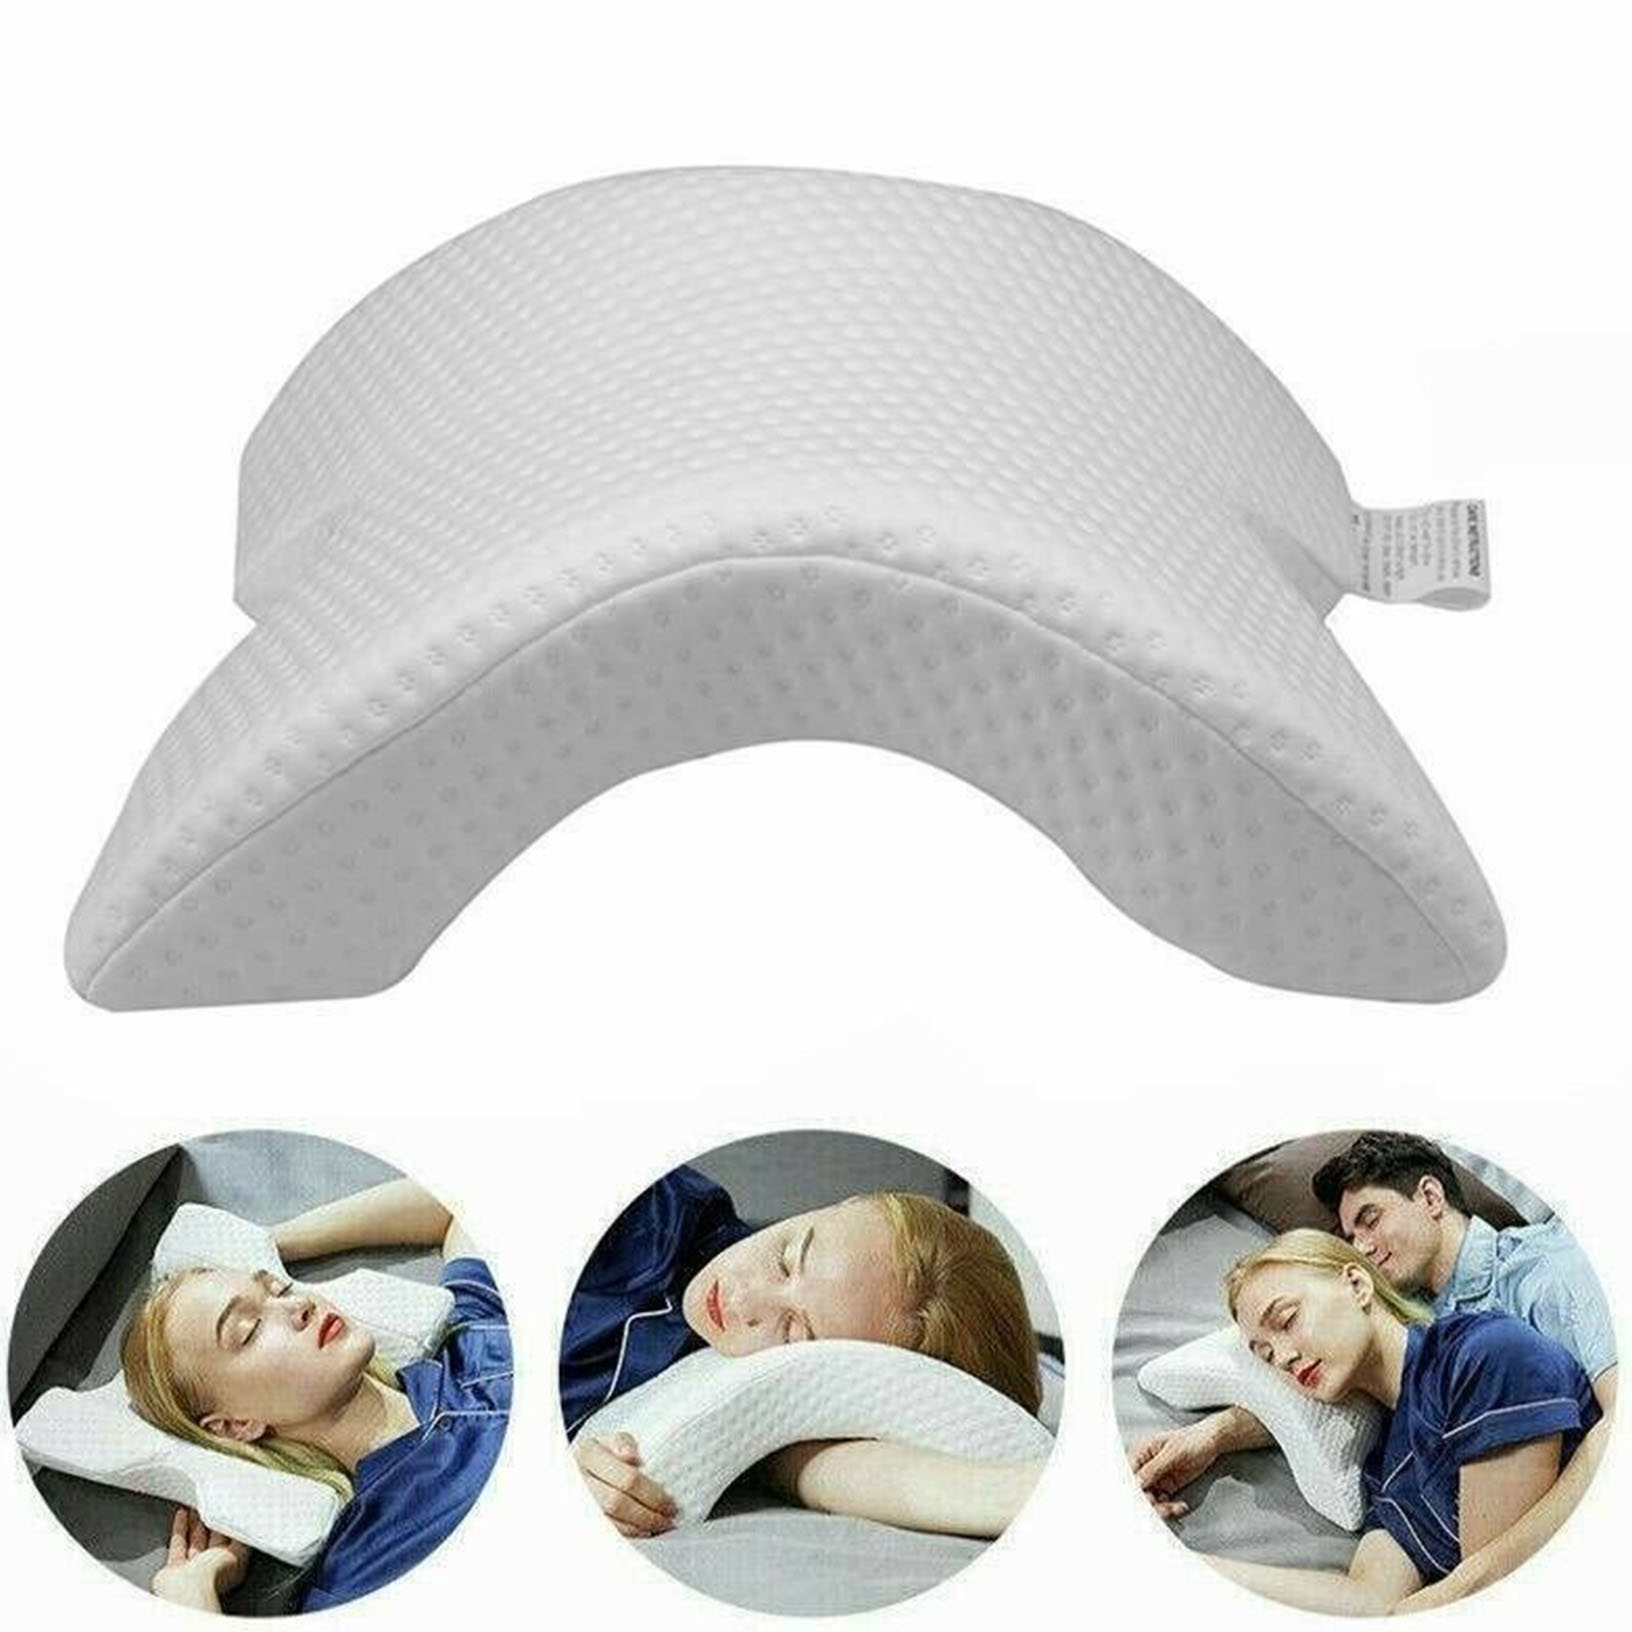 Arm Cuddling Curved Memory Foam Pillow Detachable Slow Rebound Tunnel Shaped THD